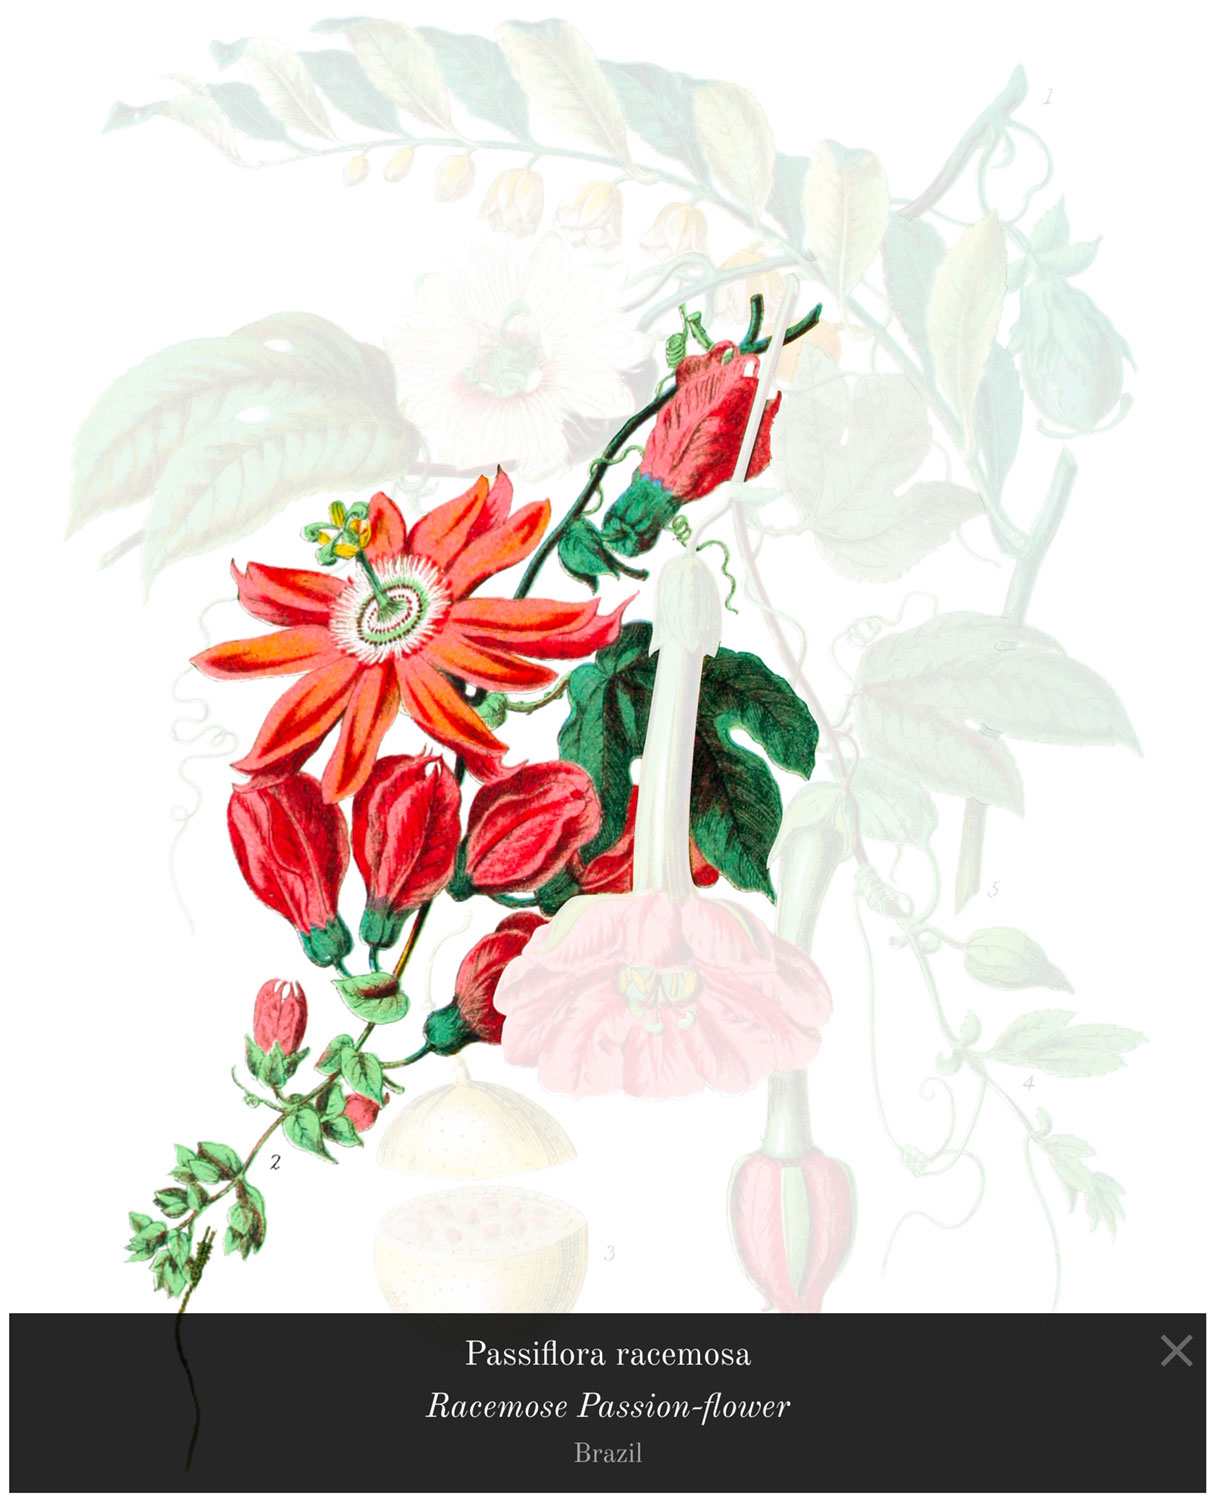 Passiflora racemosa from the passion-flower tribe highlighted with popup caption